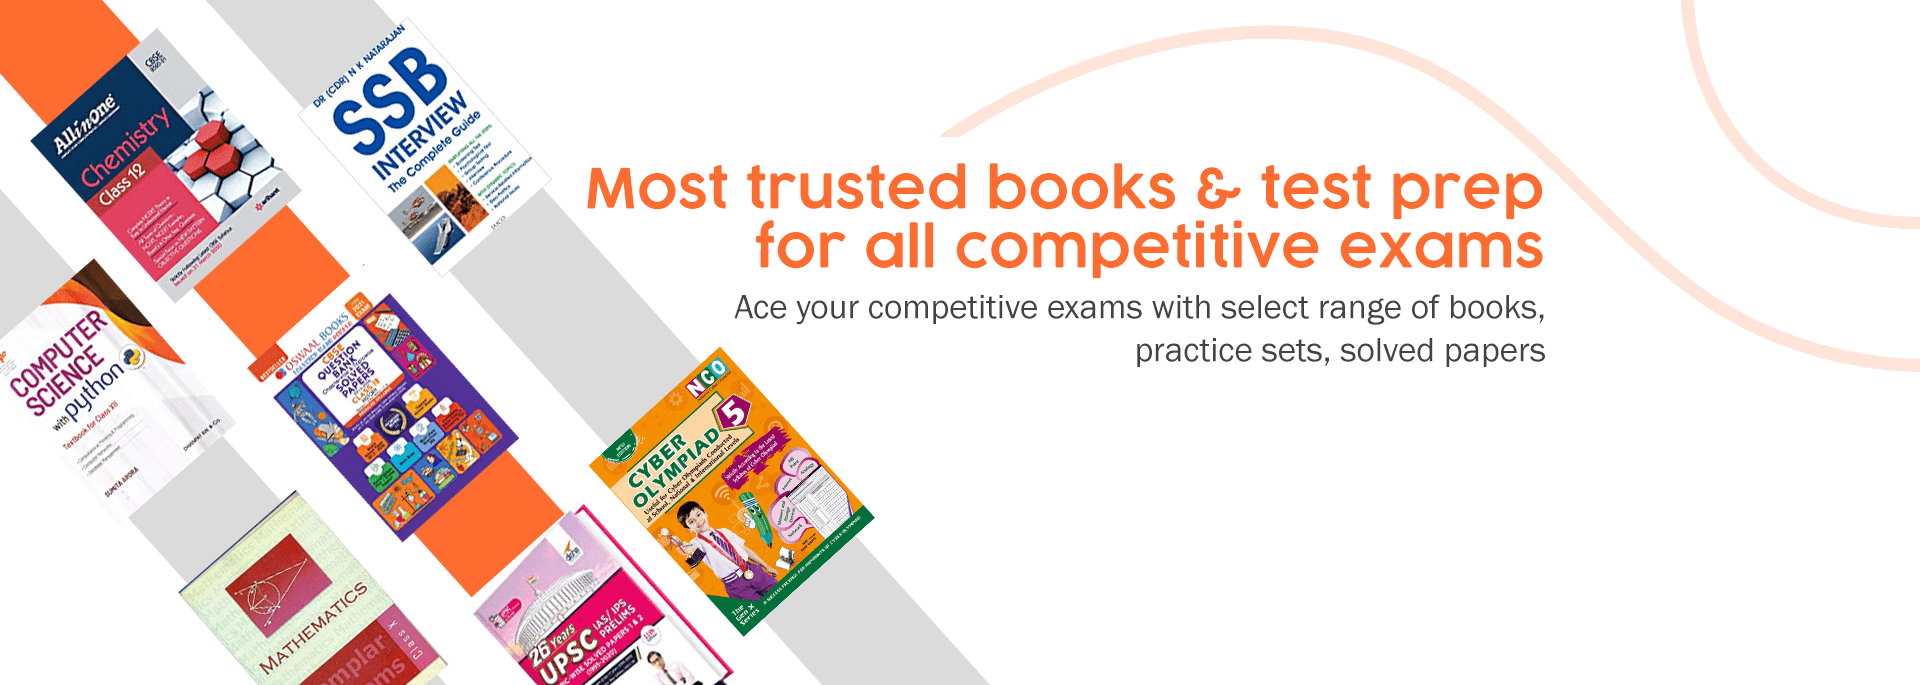 Most trusted books